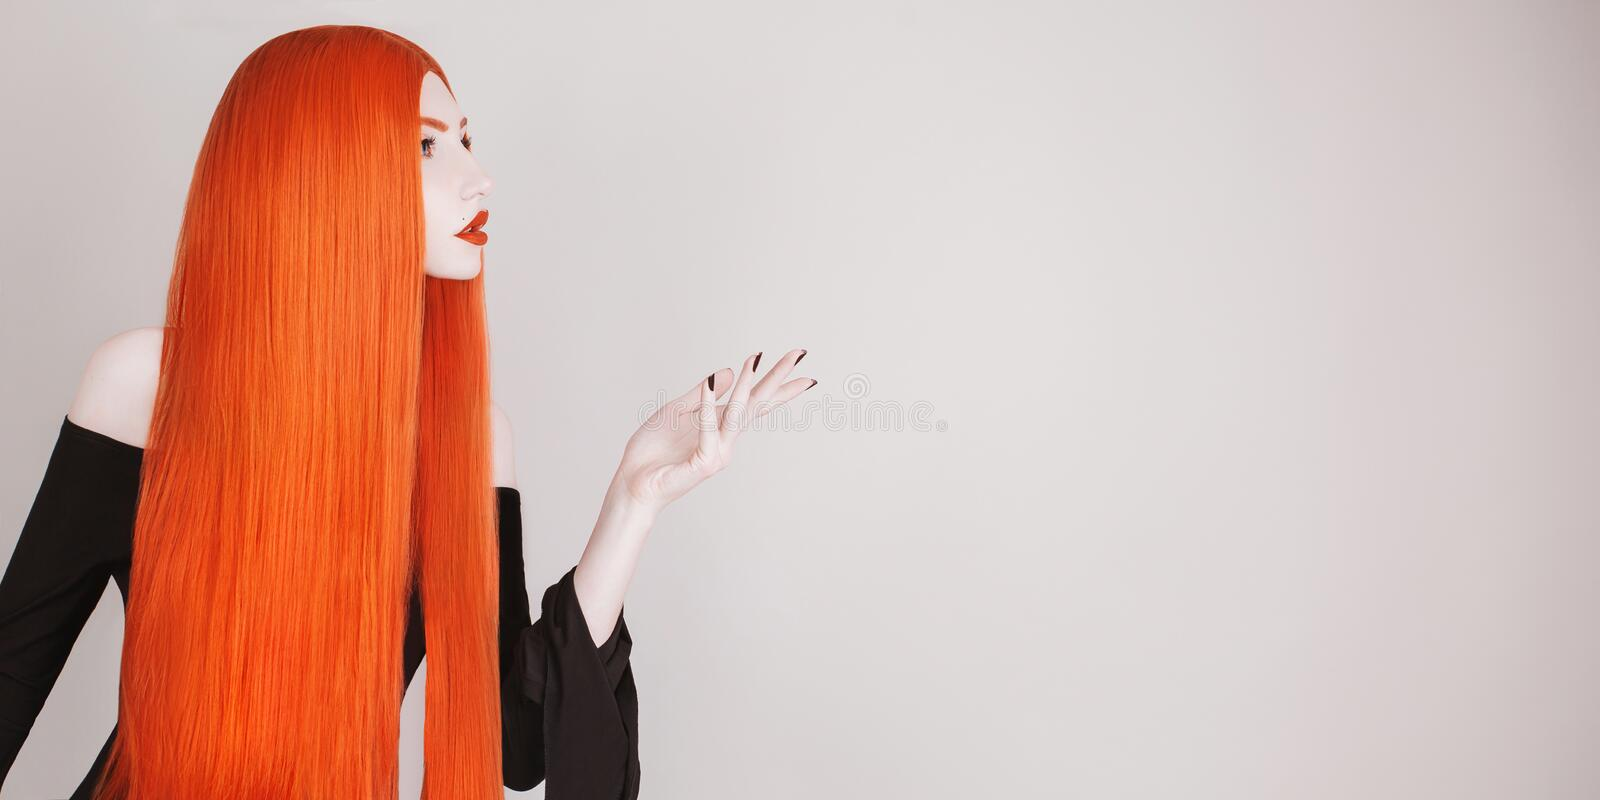 Perfect halloween attire. Gothic redhead woman with perfect straight hair in black dress advertise product. Redhead girl with red. Lips. Gothic look. Hair stock image